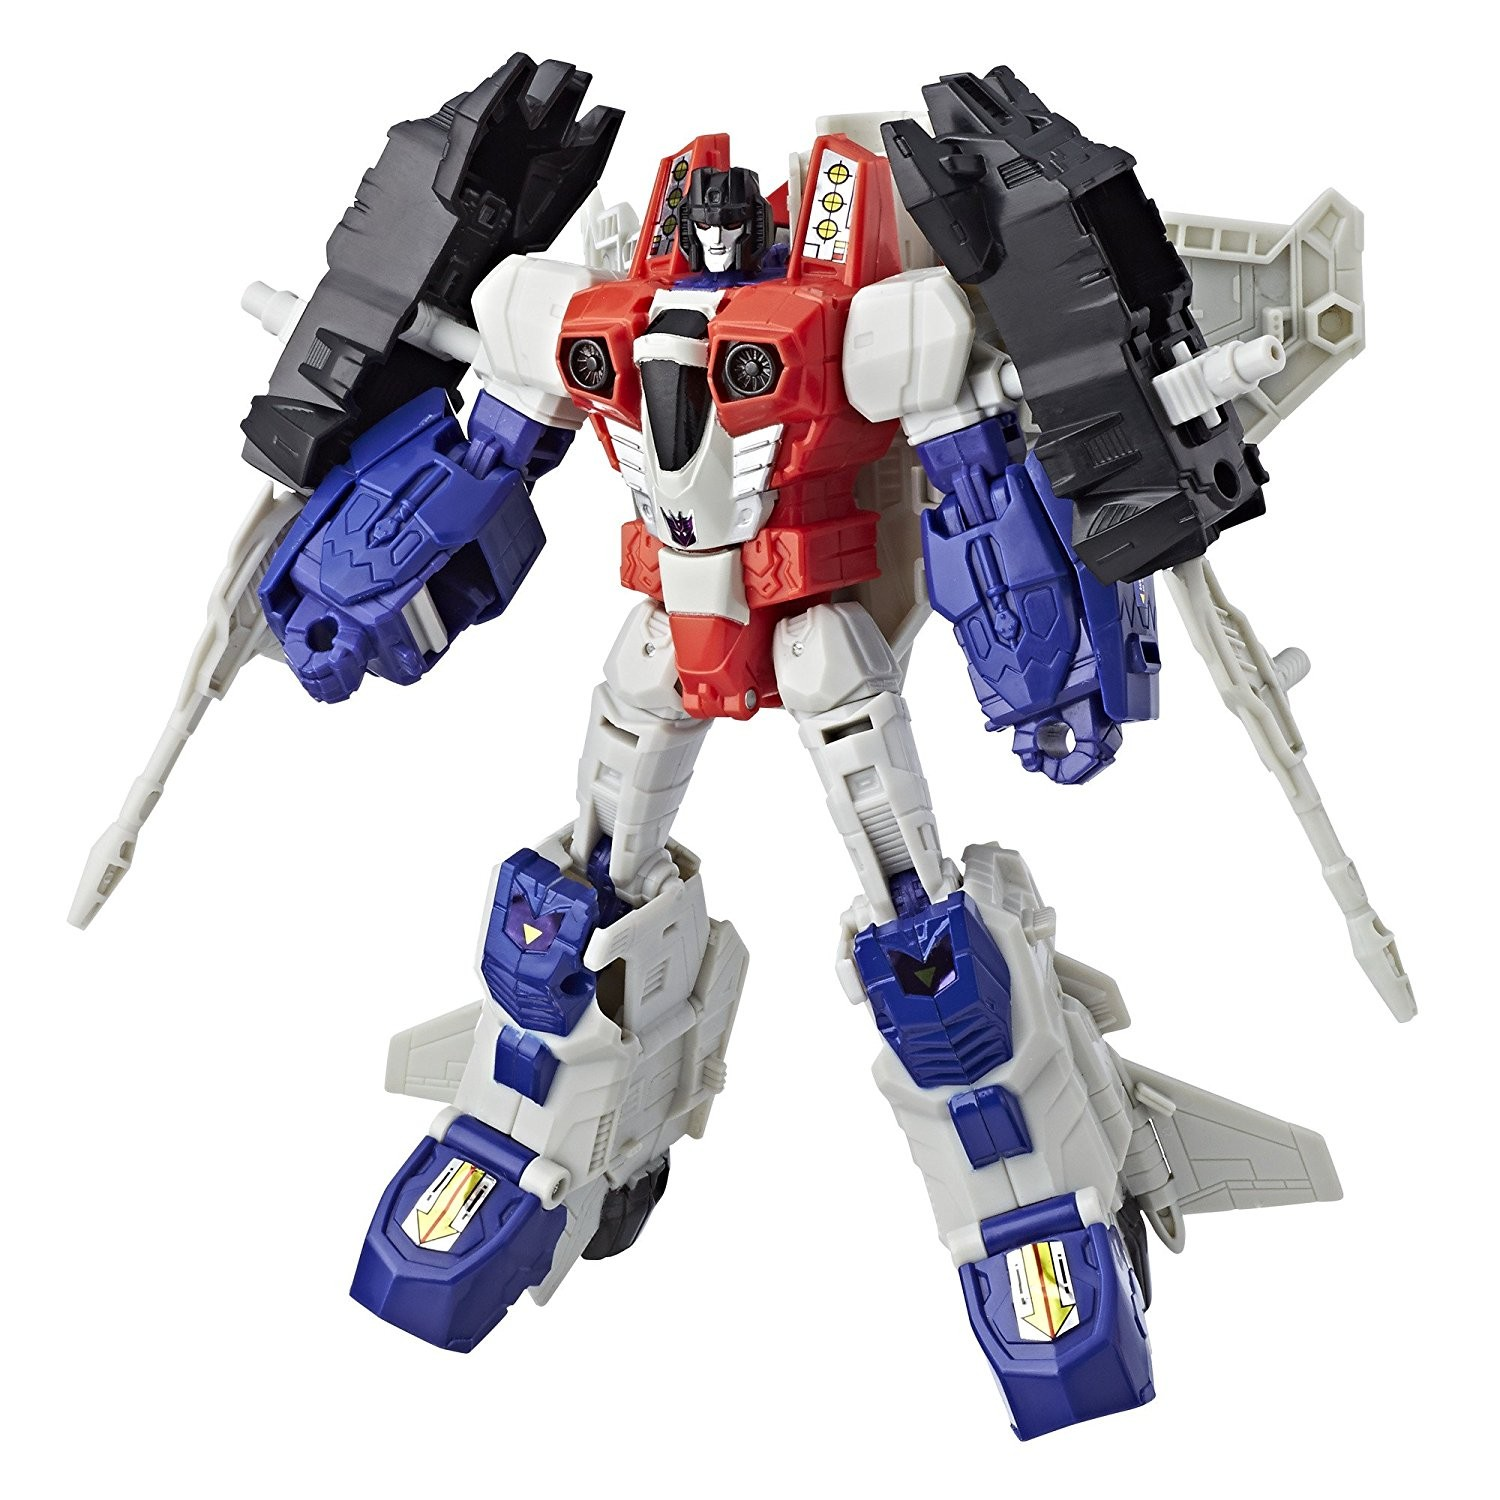 Transformers News: Steal of a Deal: 25% off Transformers Power of the Primes Voyager Starscream